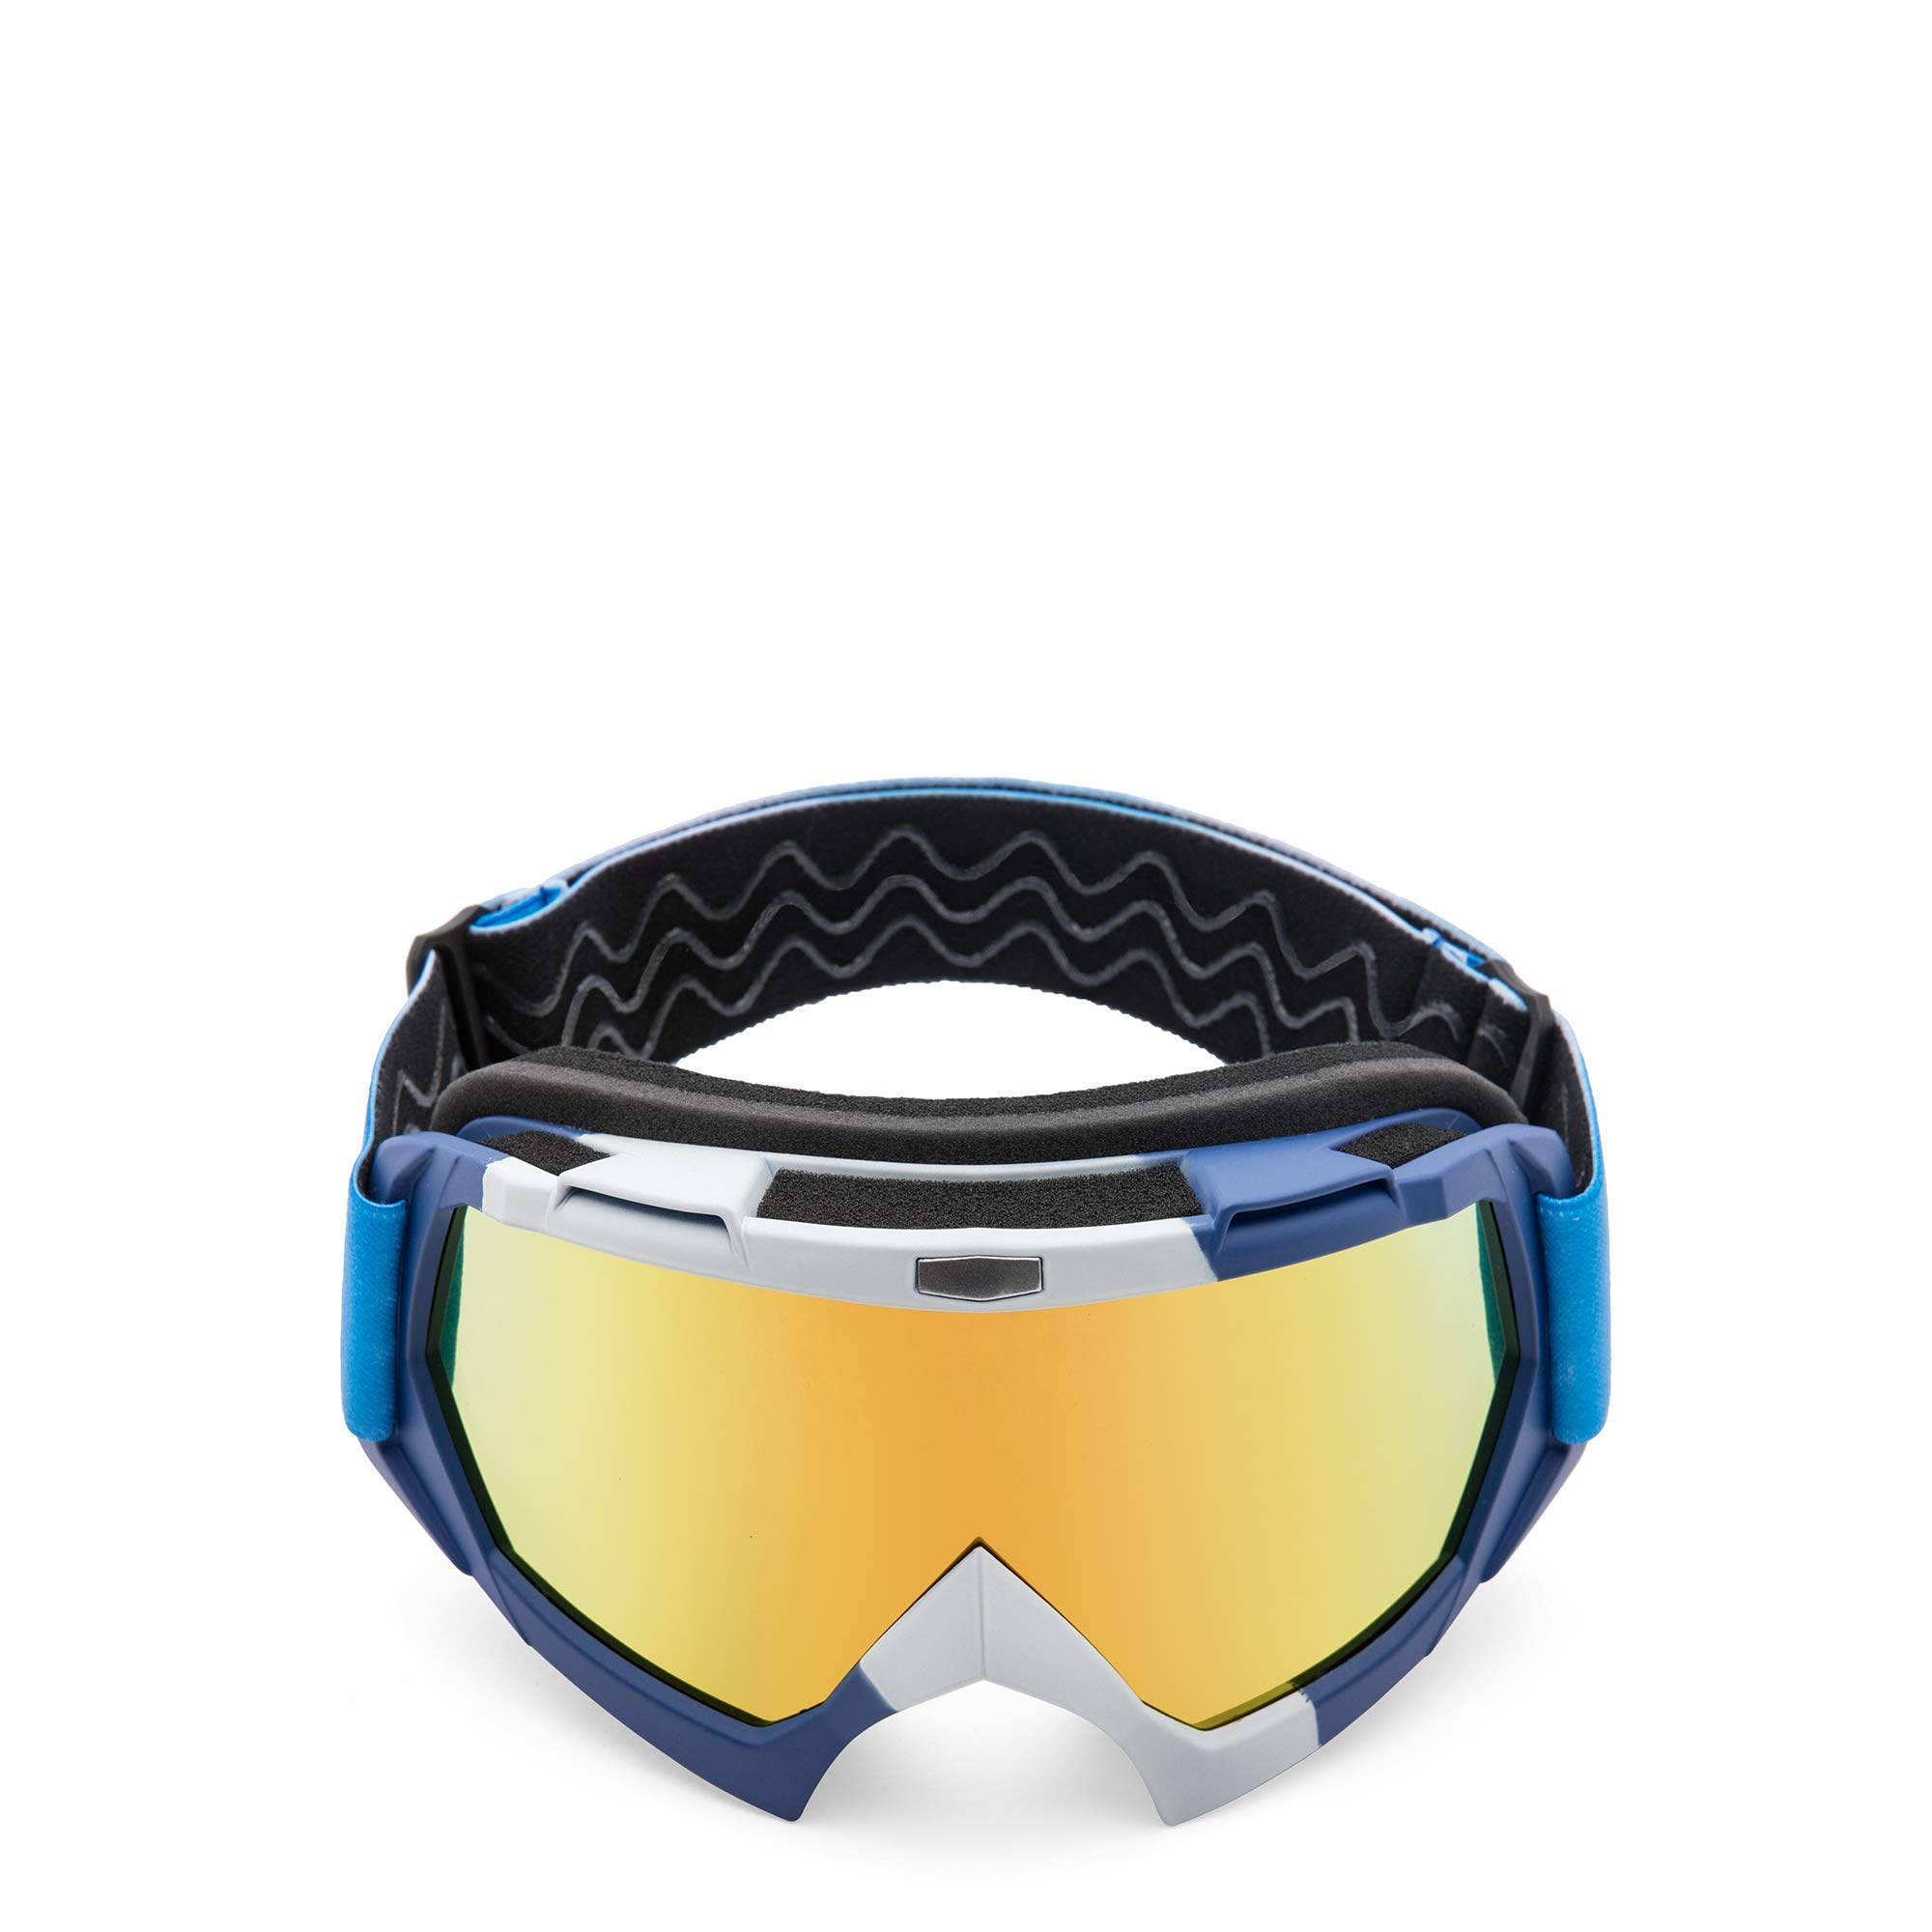 AULLY PARK Motorcycle Goggles, Dirt Bike Goggles Grip, ATV Motocross Mx Goggles Glasses with 3 Lens Kit Fit for Men Women Youth Kids by AULLY PARK